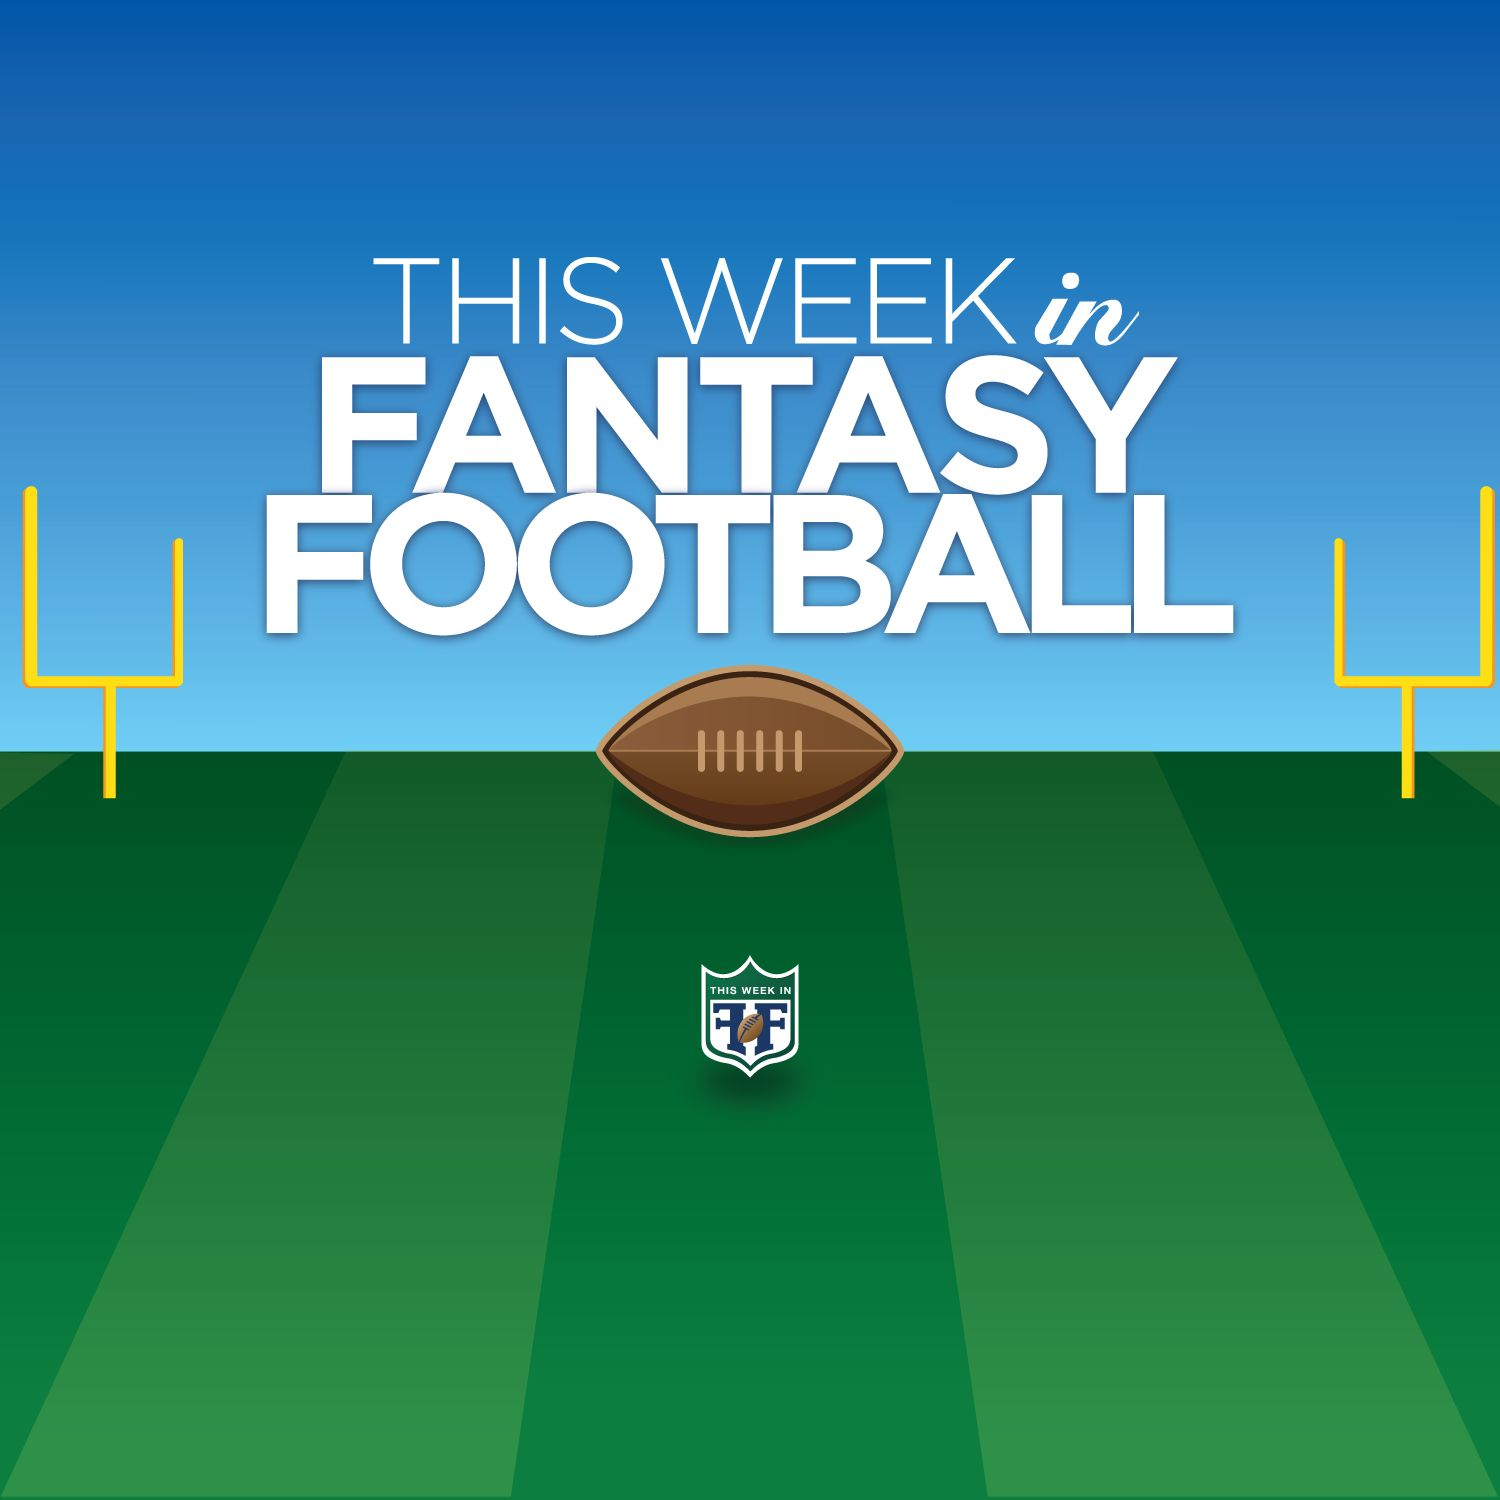 This Week in Fantasy Football